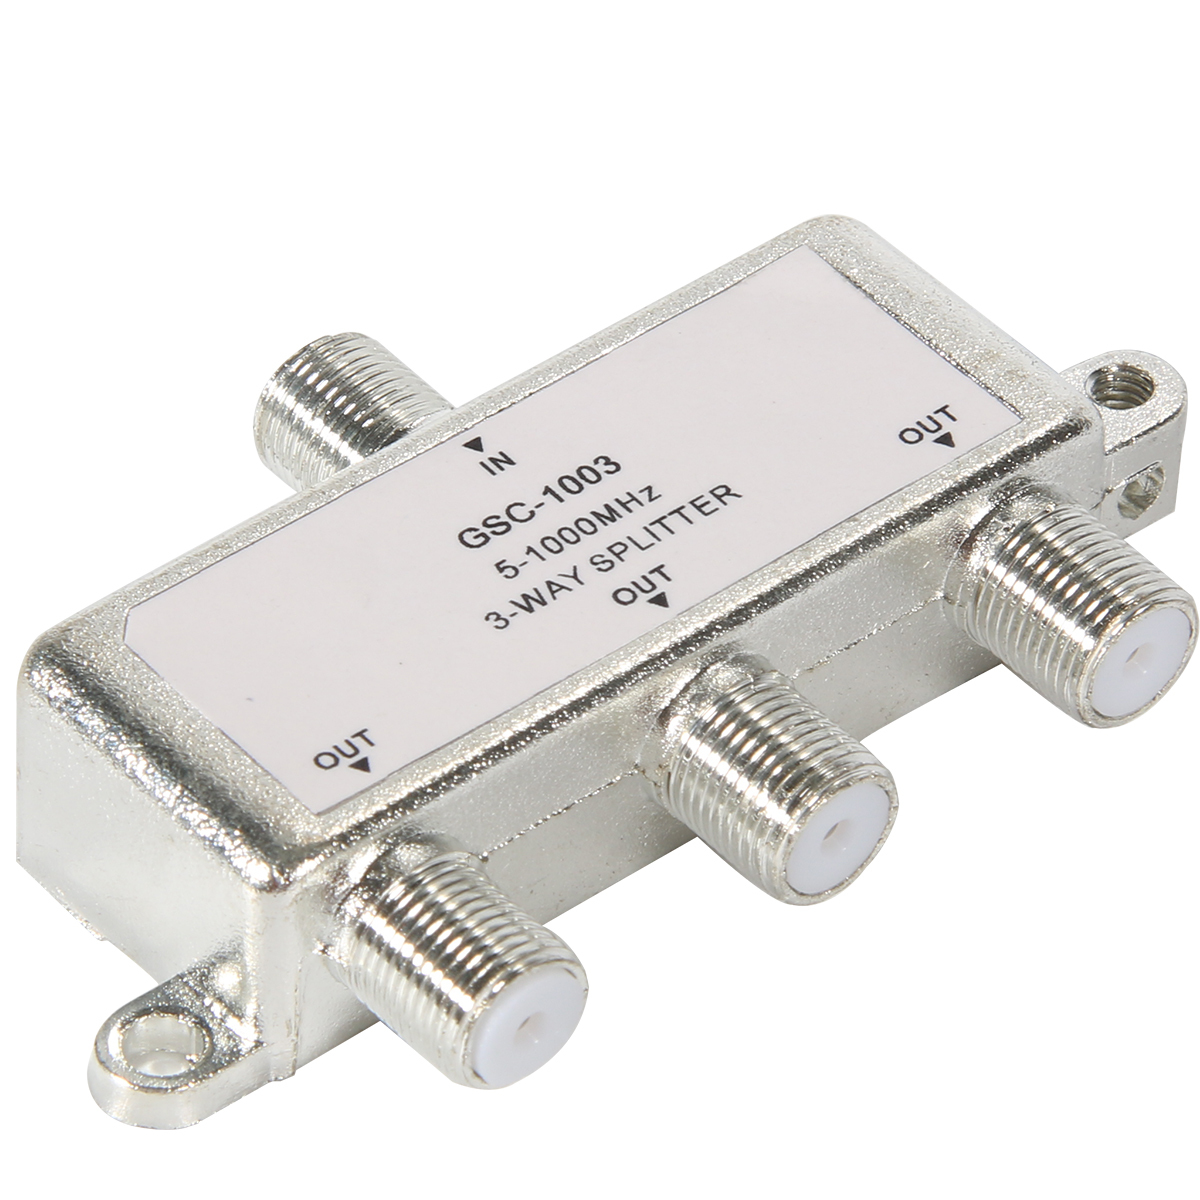 Philippines   3 Way Cable TV Splitter Switch BI127-SZ (Silver ...